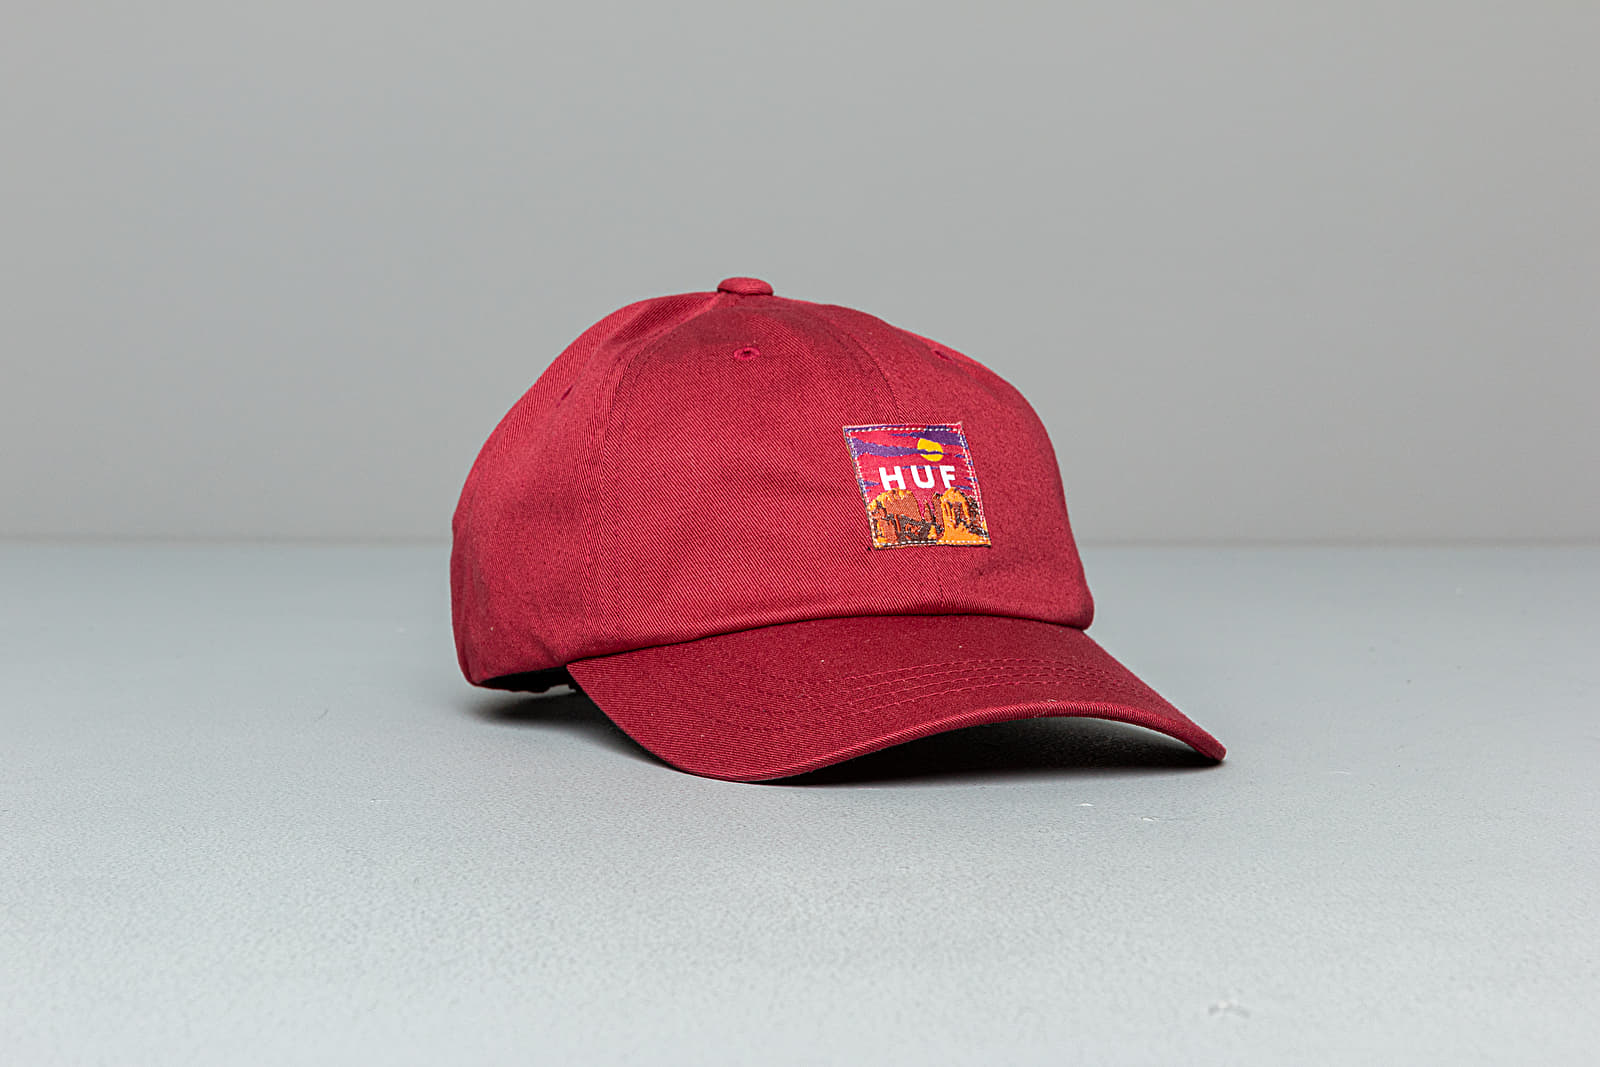 HUF Sedona CV 6 Panel Hat